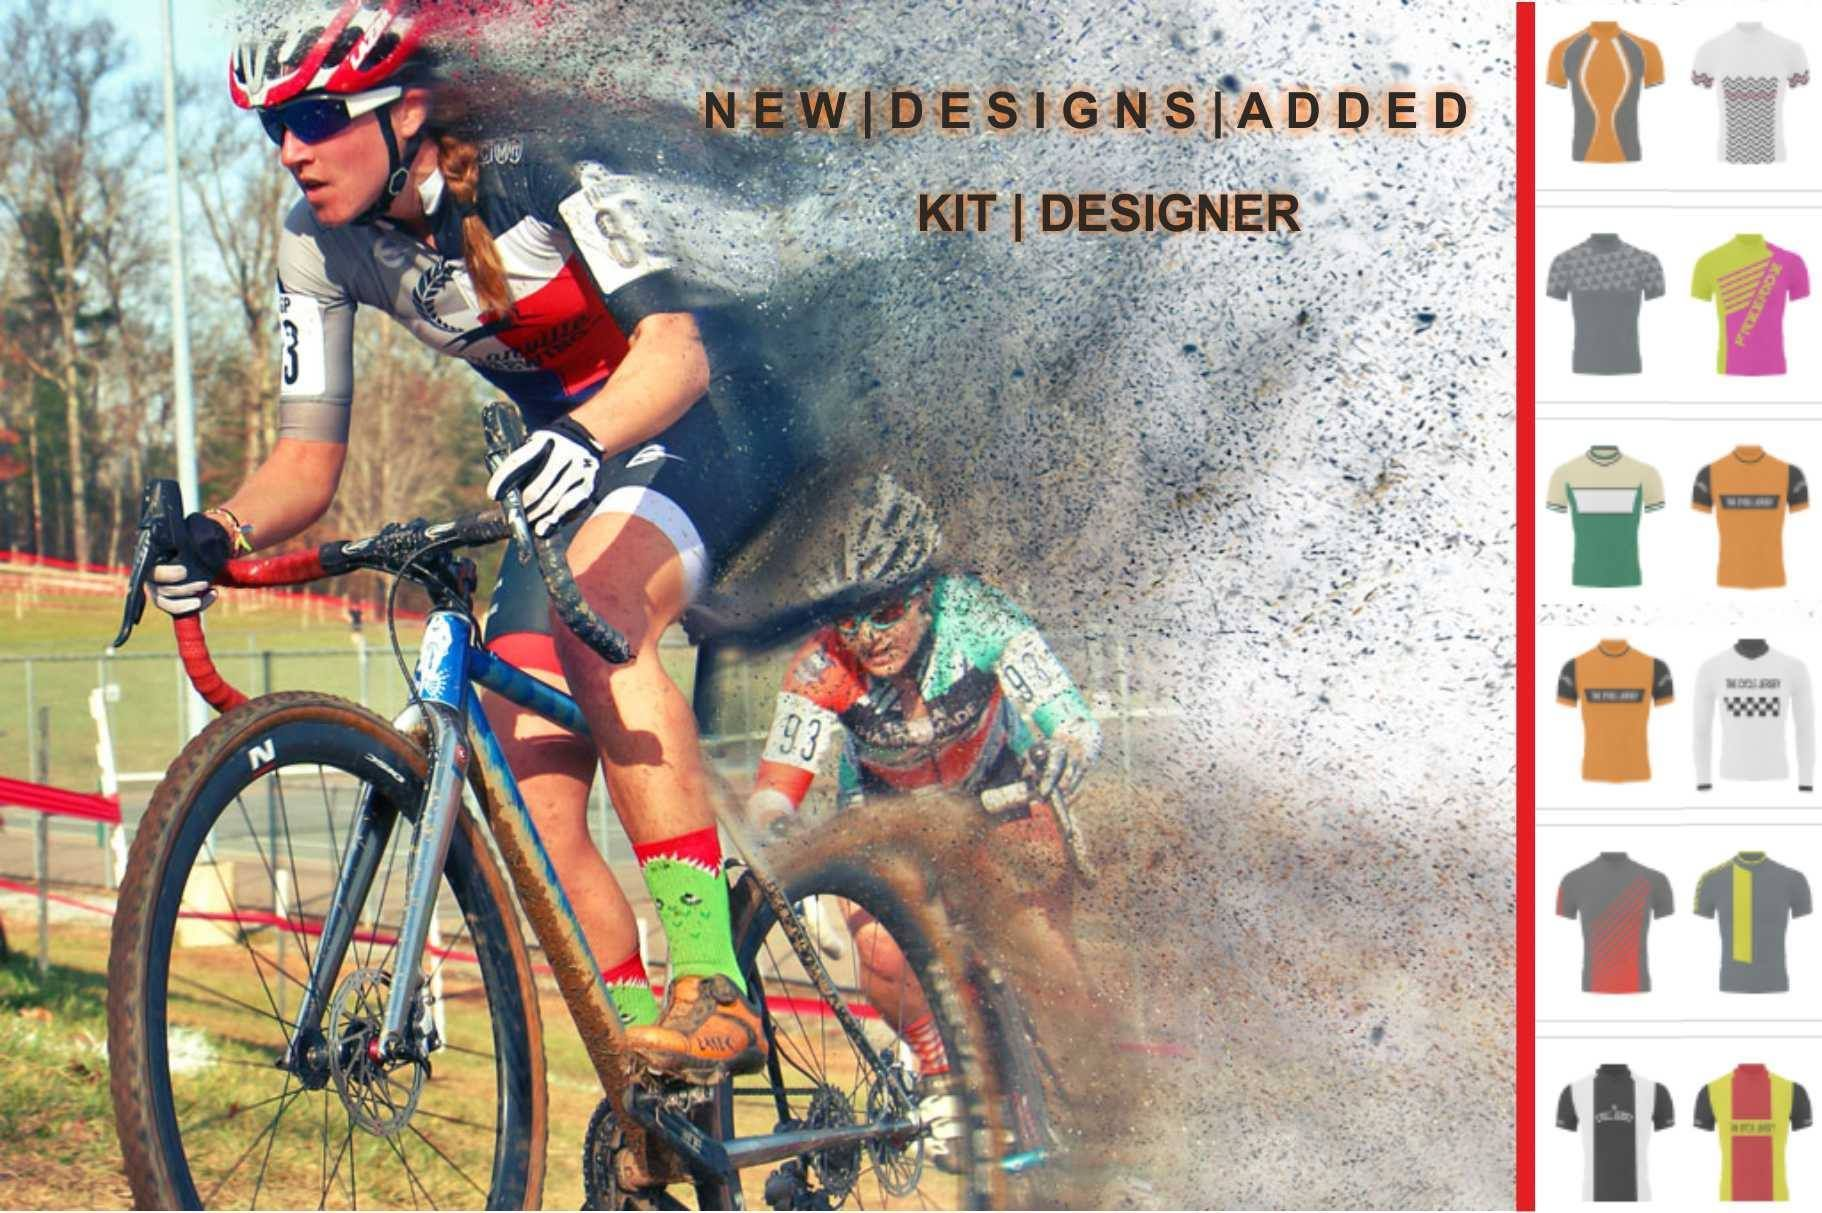 in charge of designing jerseys for the annual office charity ride